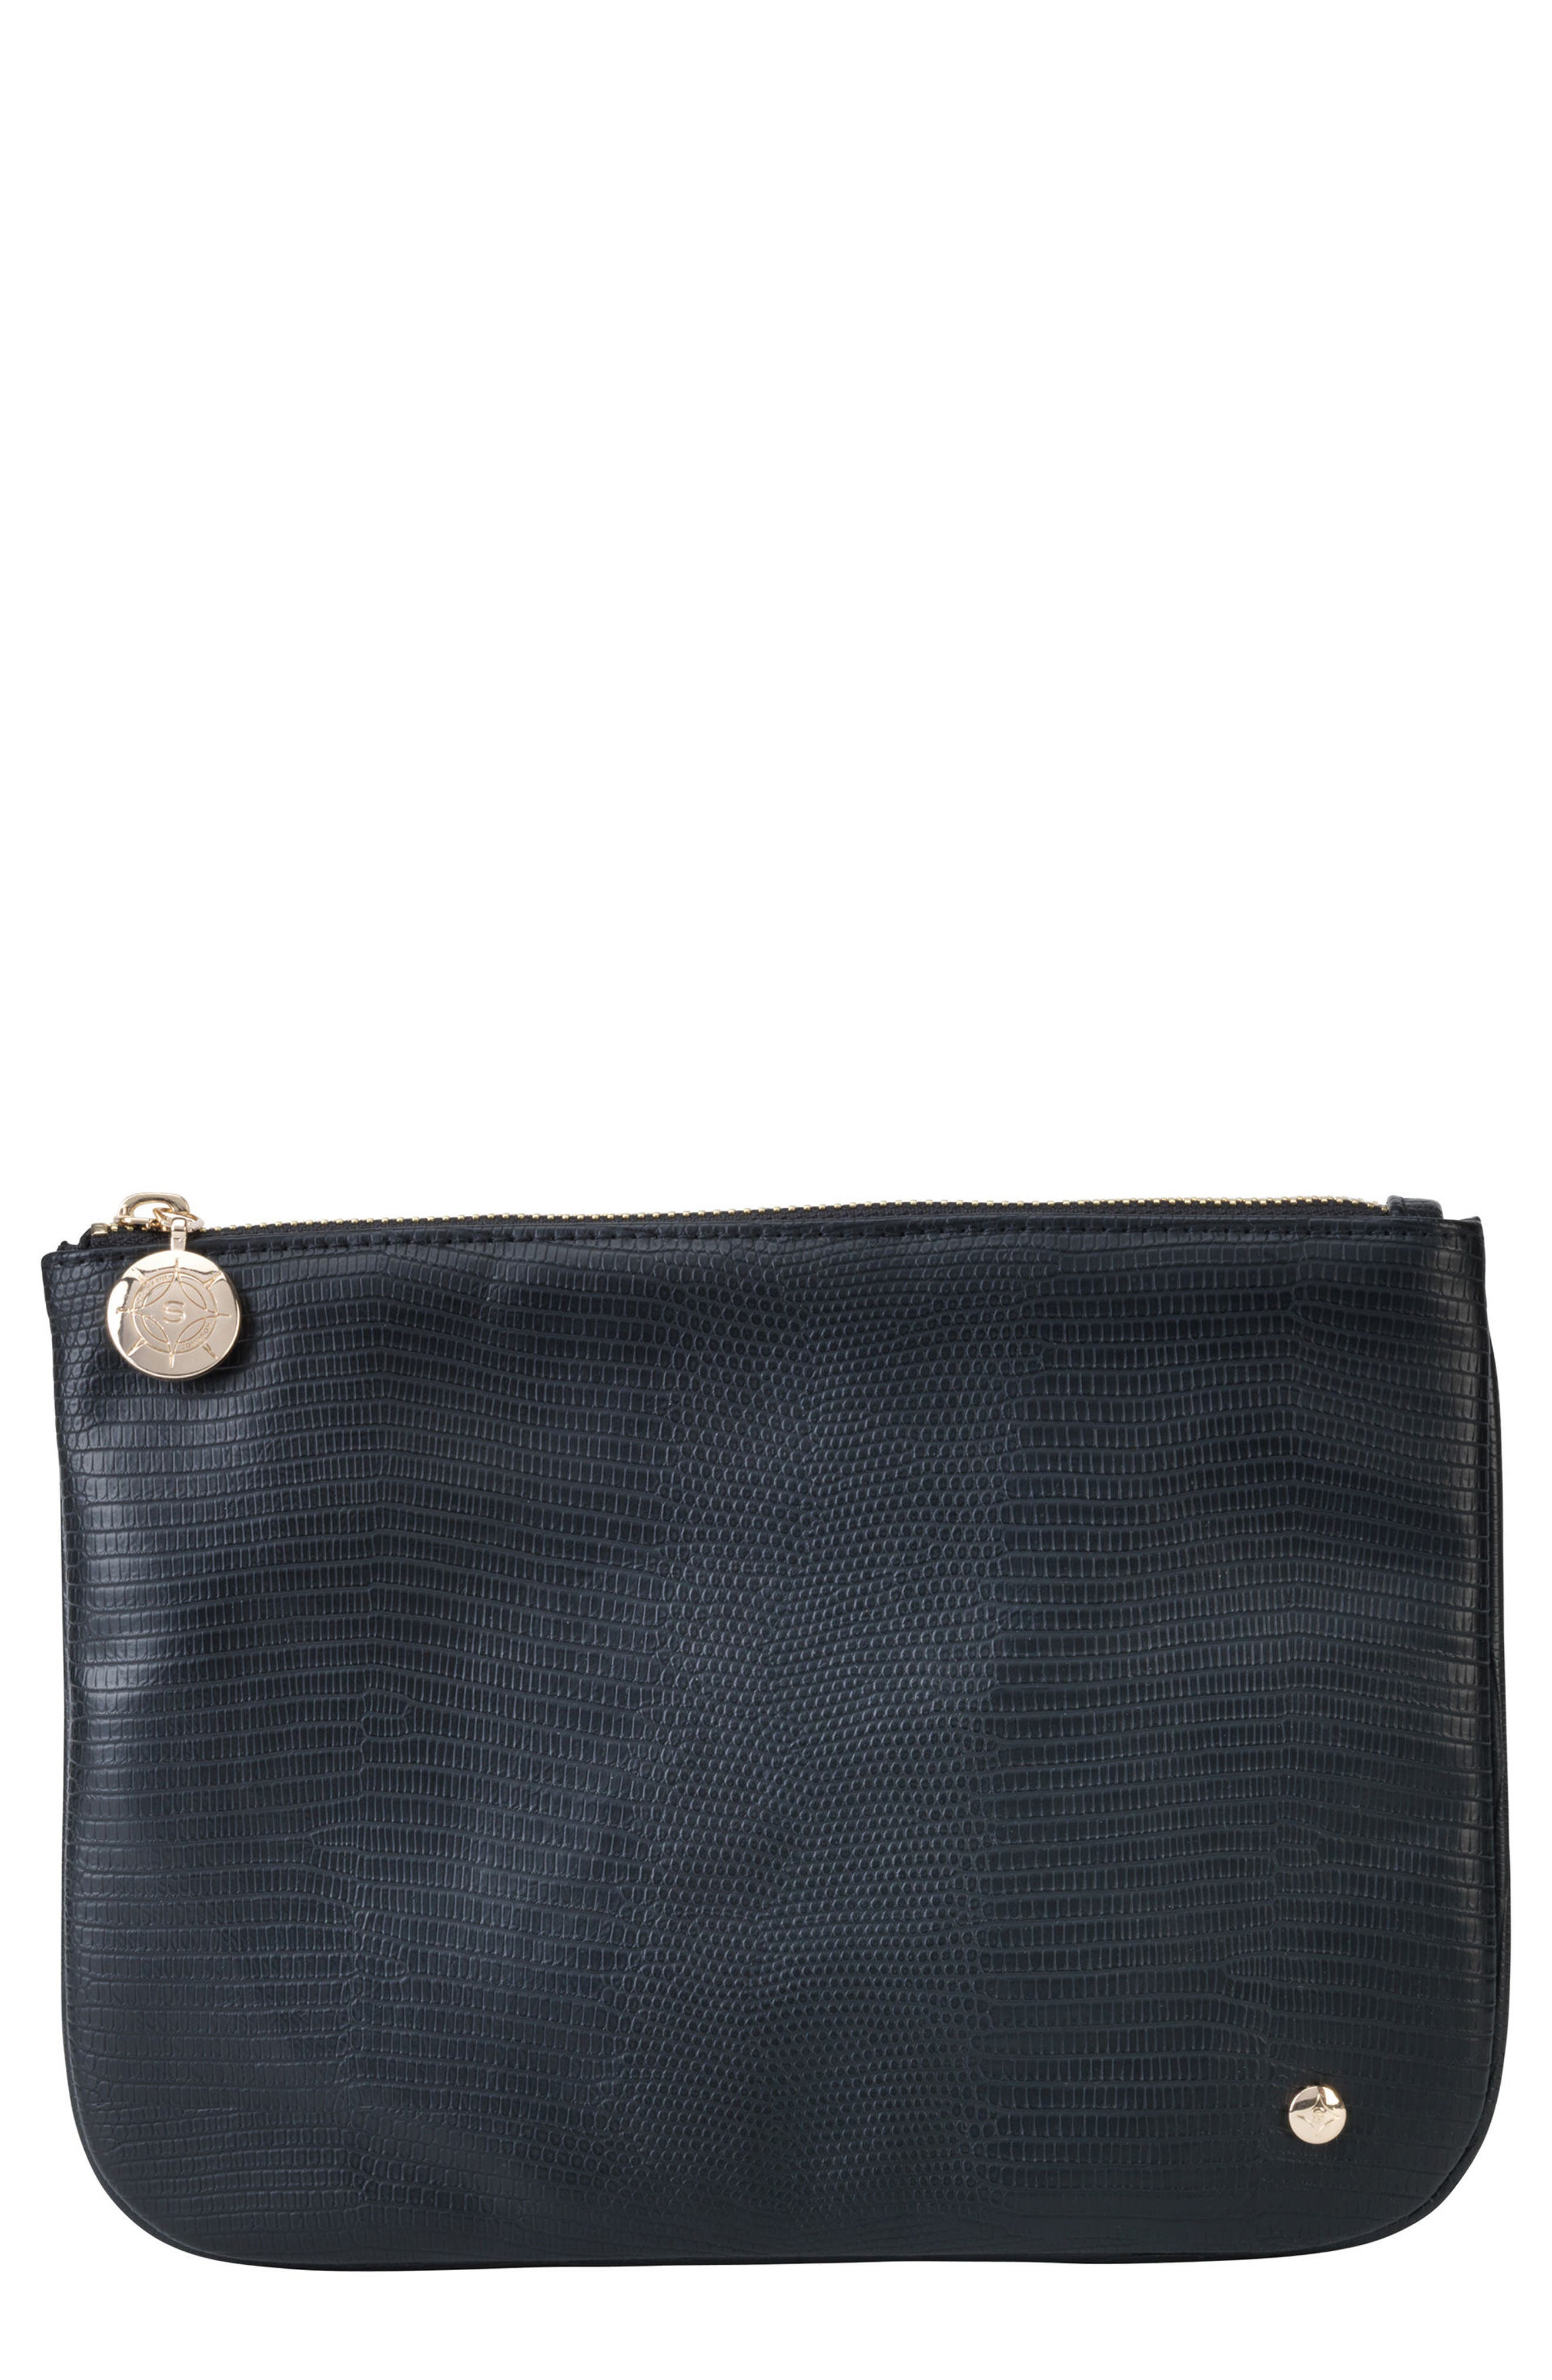 Stephanie Johnson Galapagos Noir Large Flat Pouch